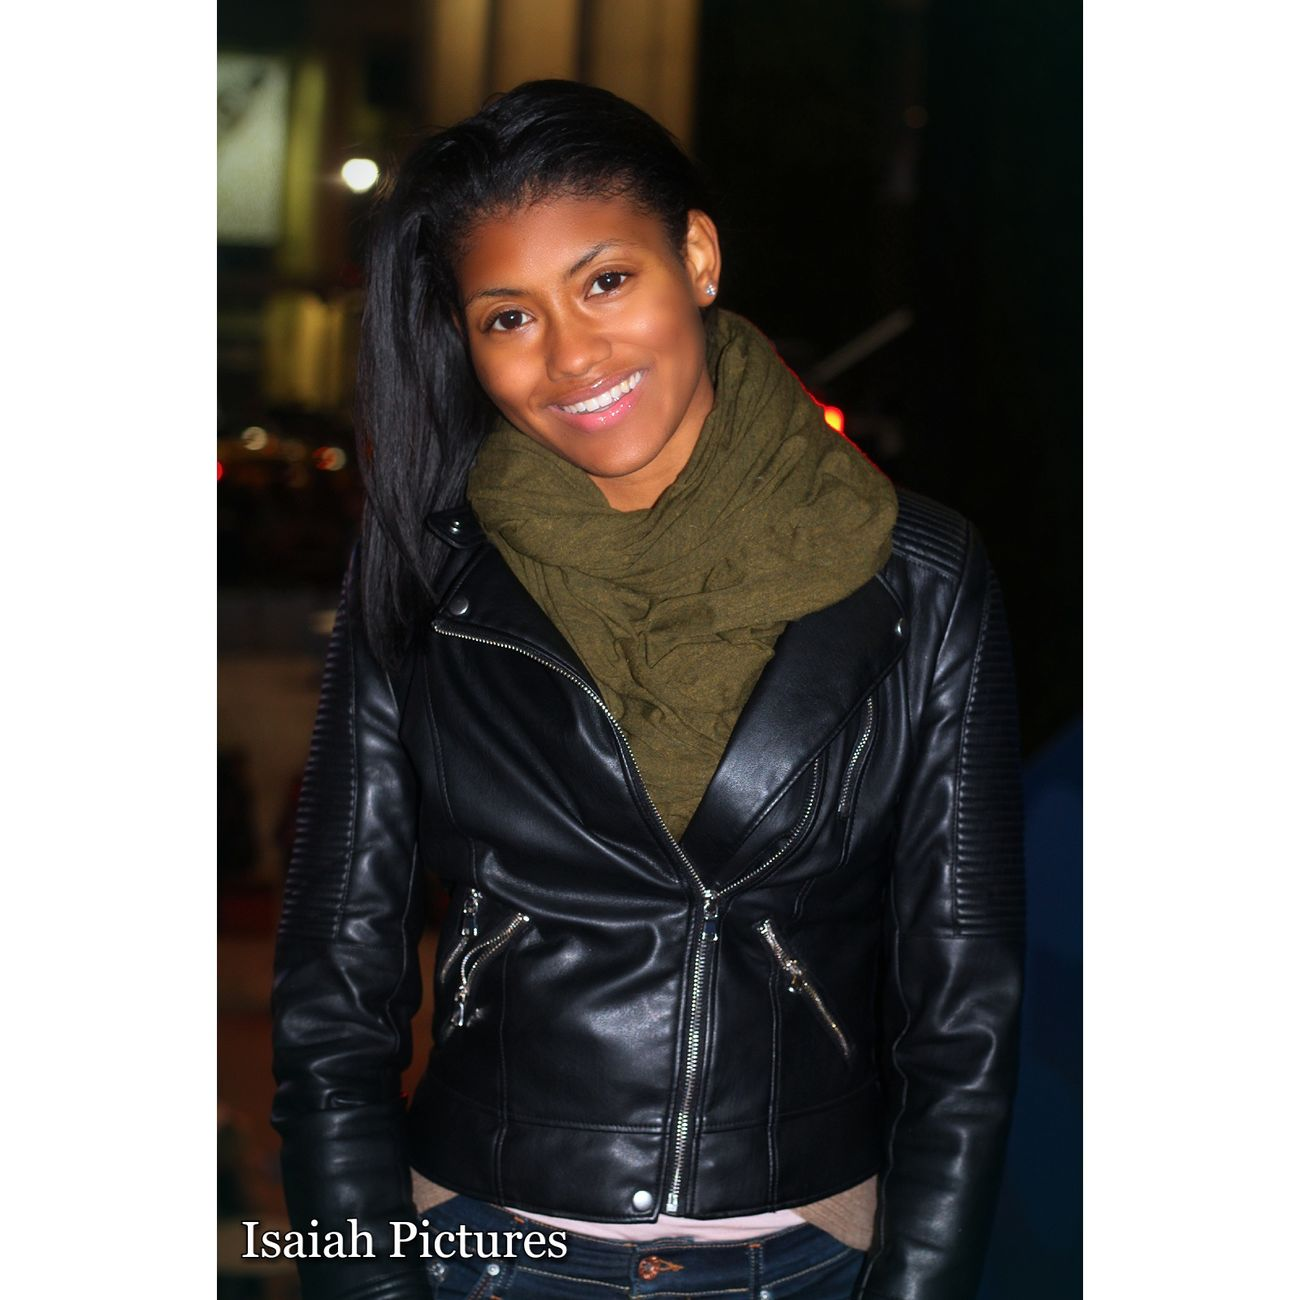 Portrait Looking At Camera Smiling One Woman Only Eyeeminstagram Headshot Model Photography Eyeemphotography Close-up City Life Model Shoot EyeEmBestPics Portrait Photography Canonphotography NYC Street Photography Nycprimeshot Nightlife Citylights NYC LIFE ♥ Portraits Modeling Portrait Of A Woman Illuminated